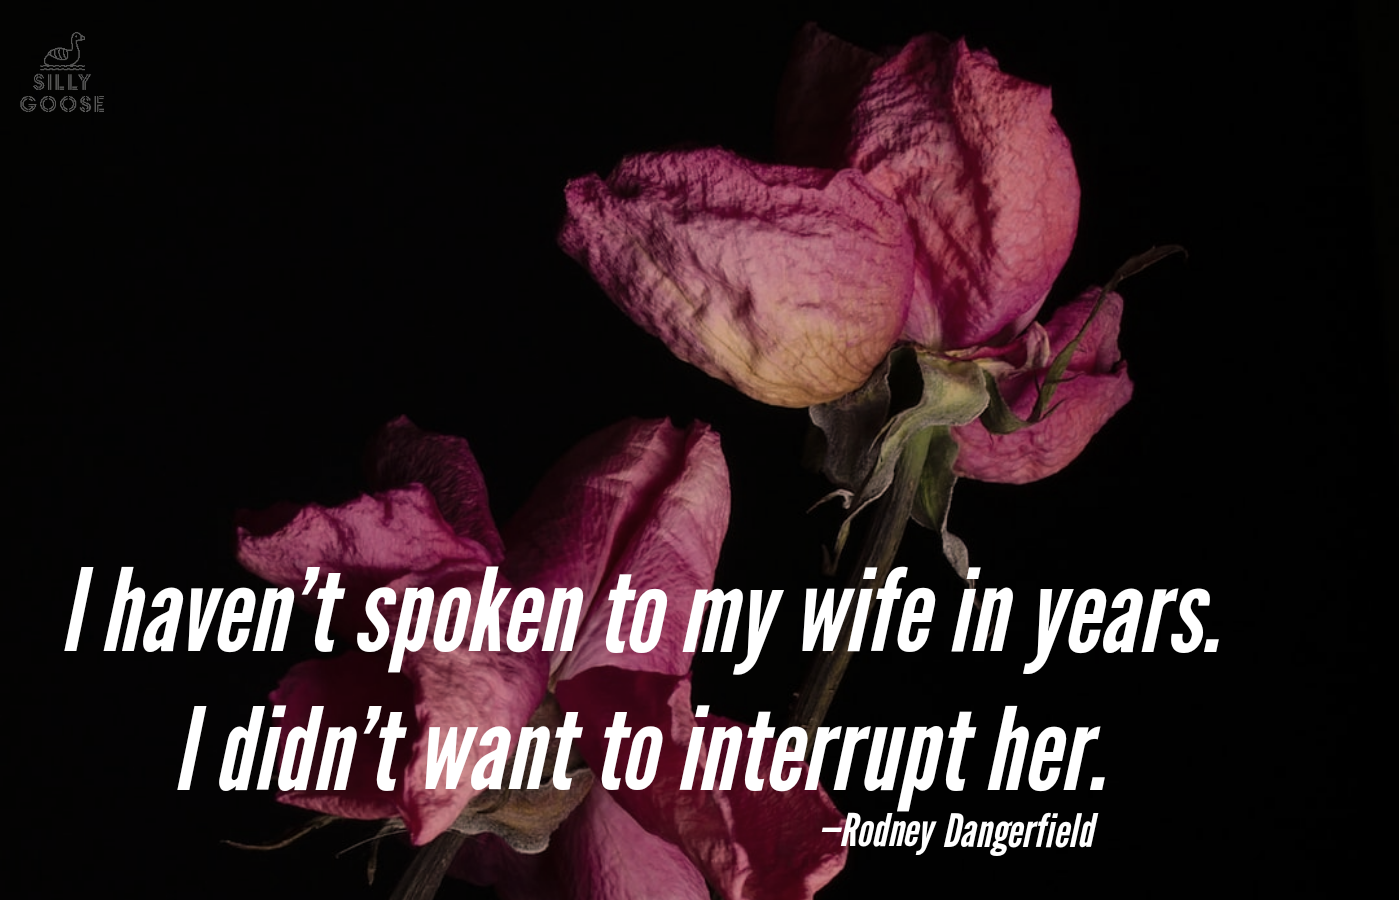 """I haven't spoken to my wife in years. I didn't want to interrupt her."" —Rodney Dangerfield [1400×900]"